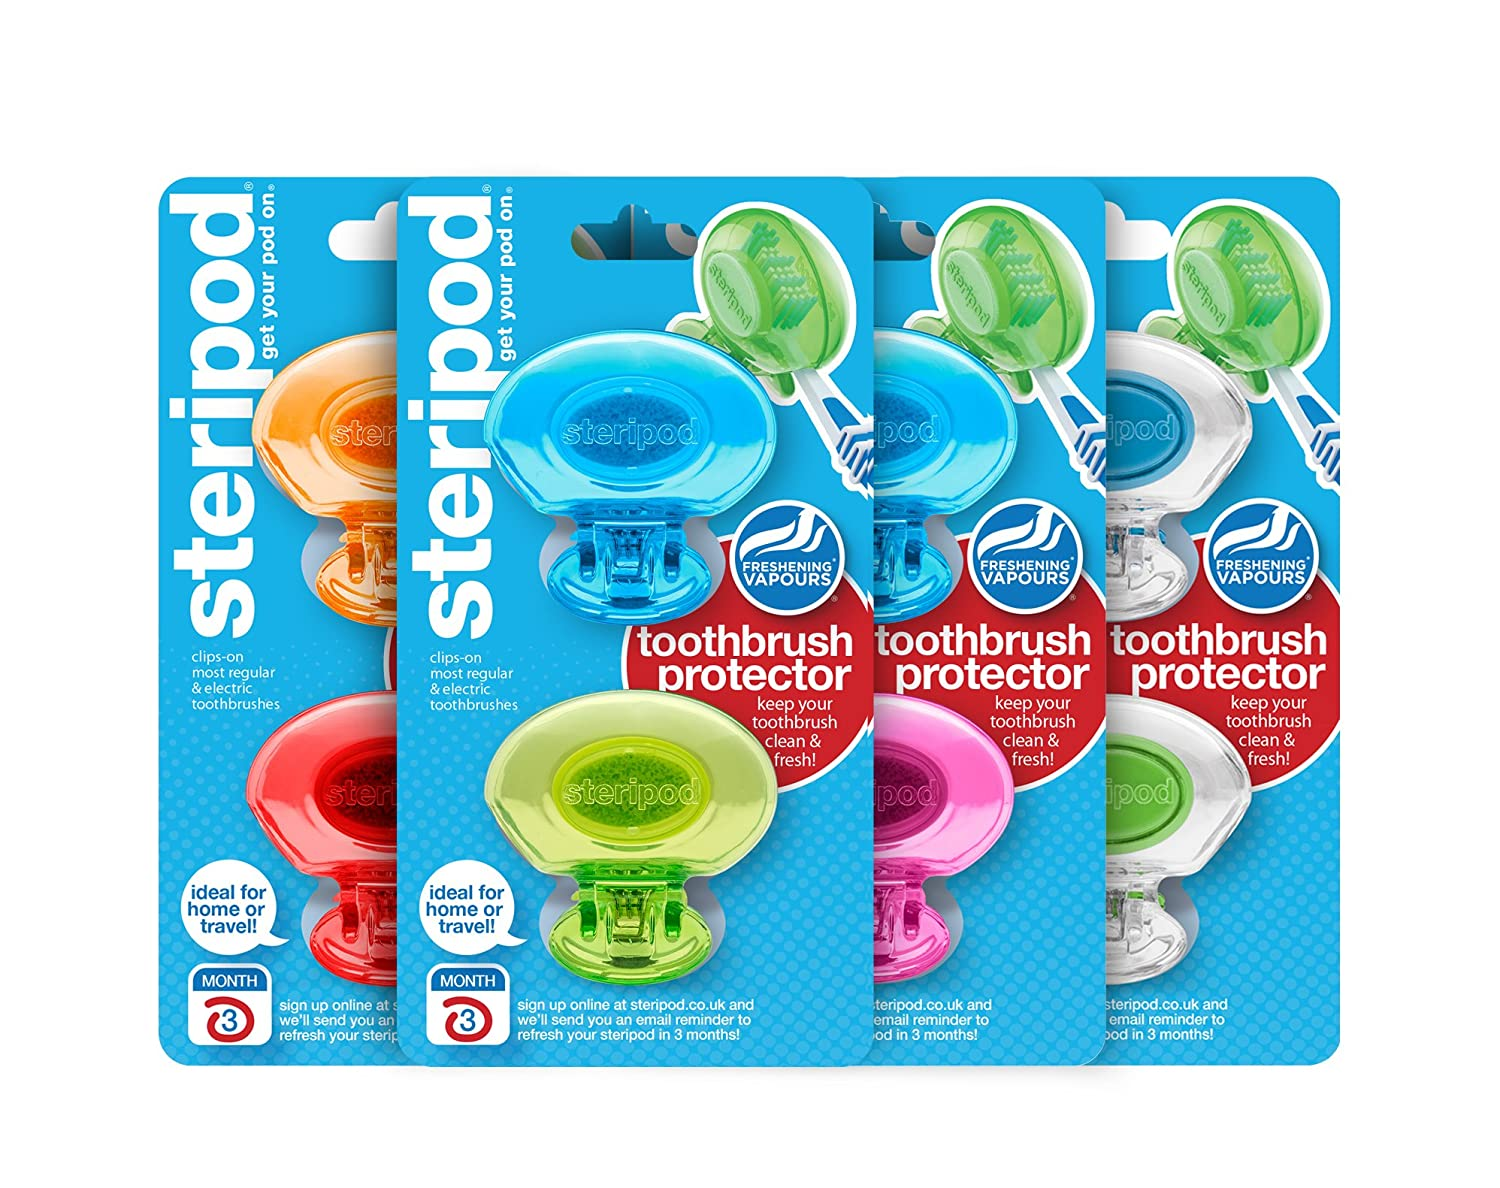 Steripod Clip On Toothbrush Protector (8 Steripods) Multi Color by Steripod